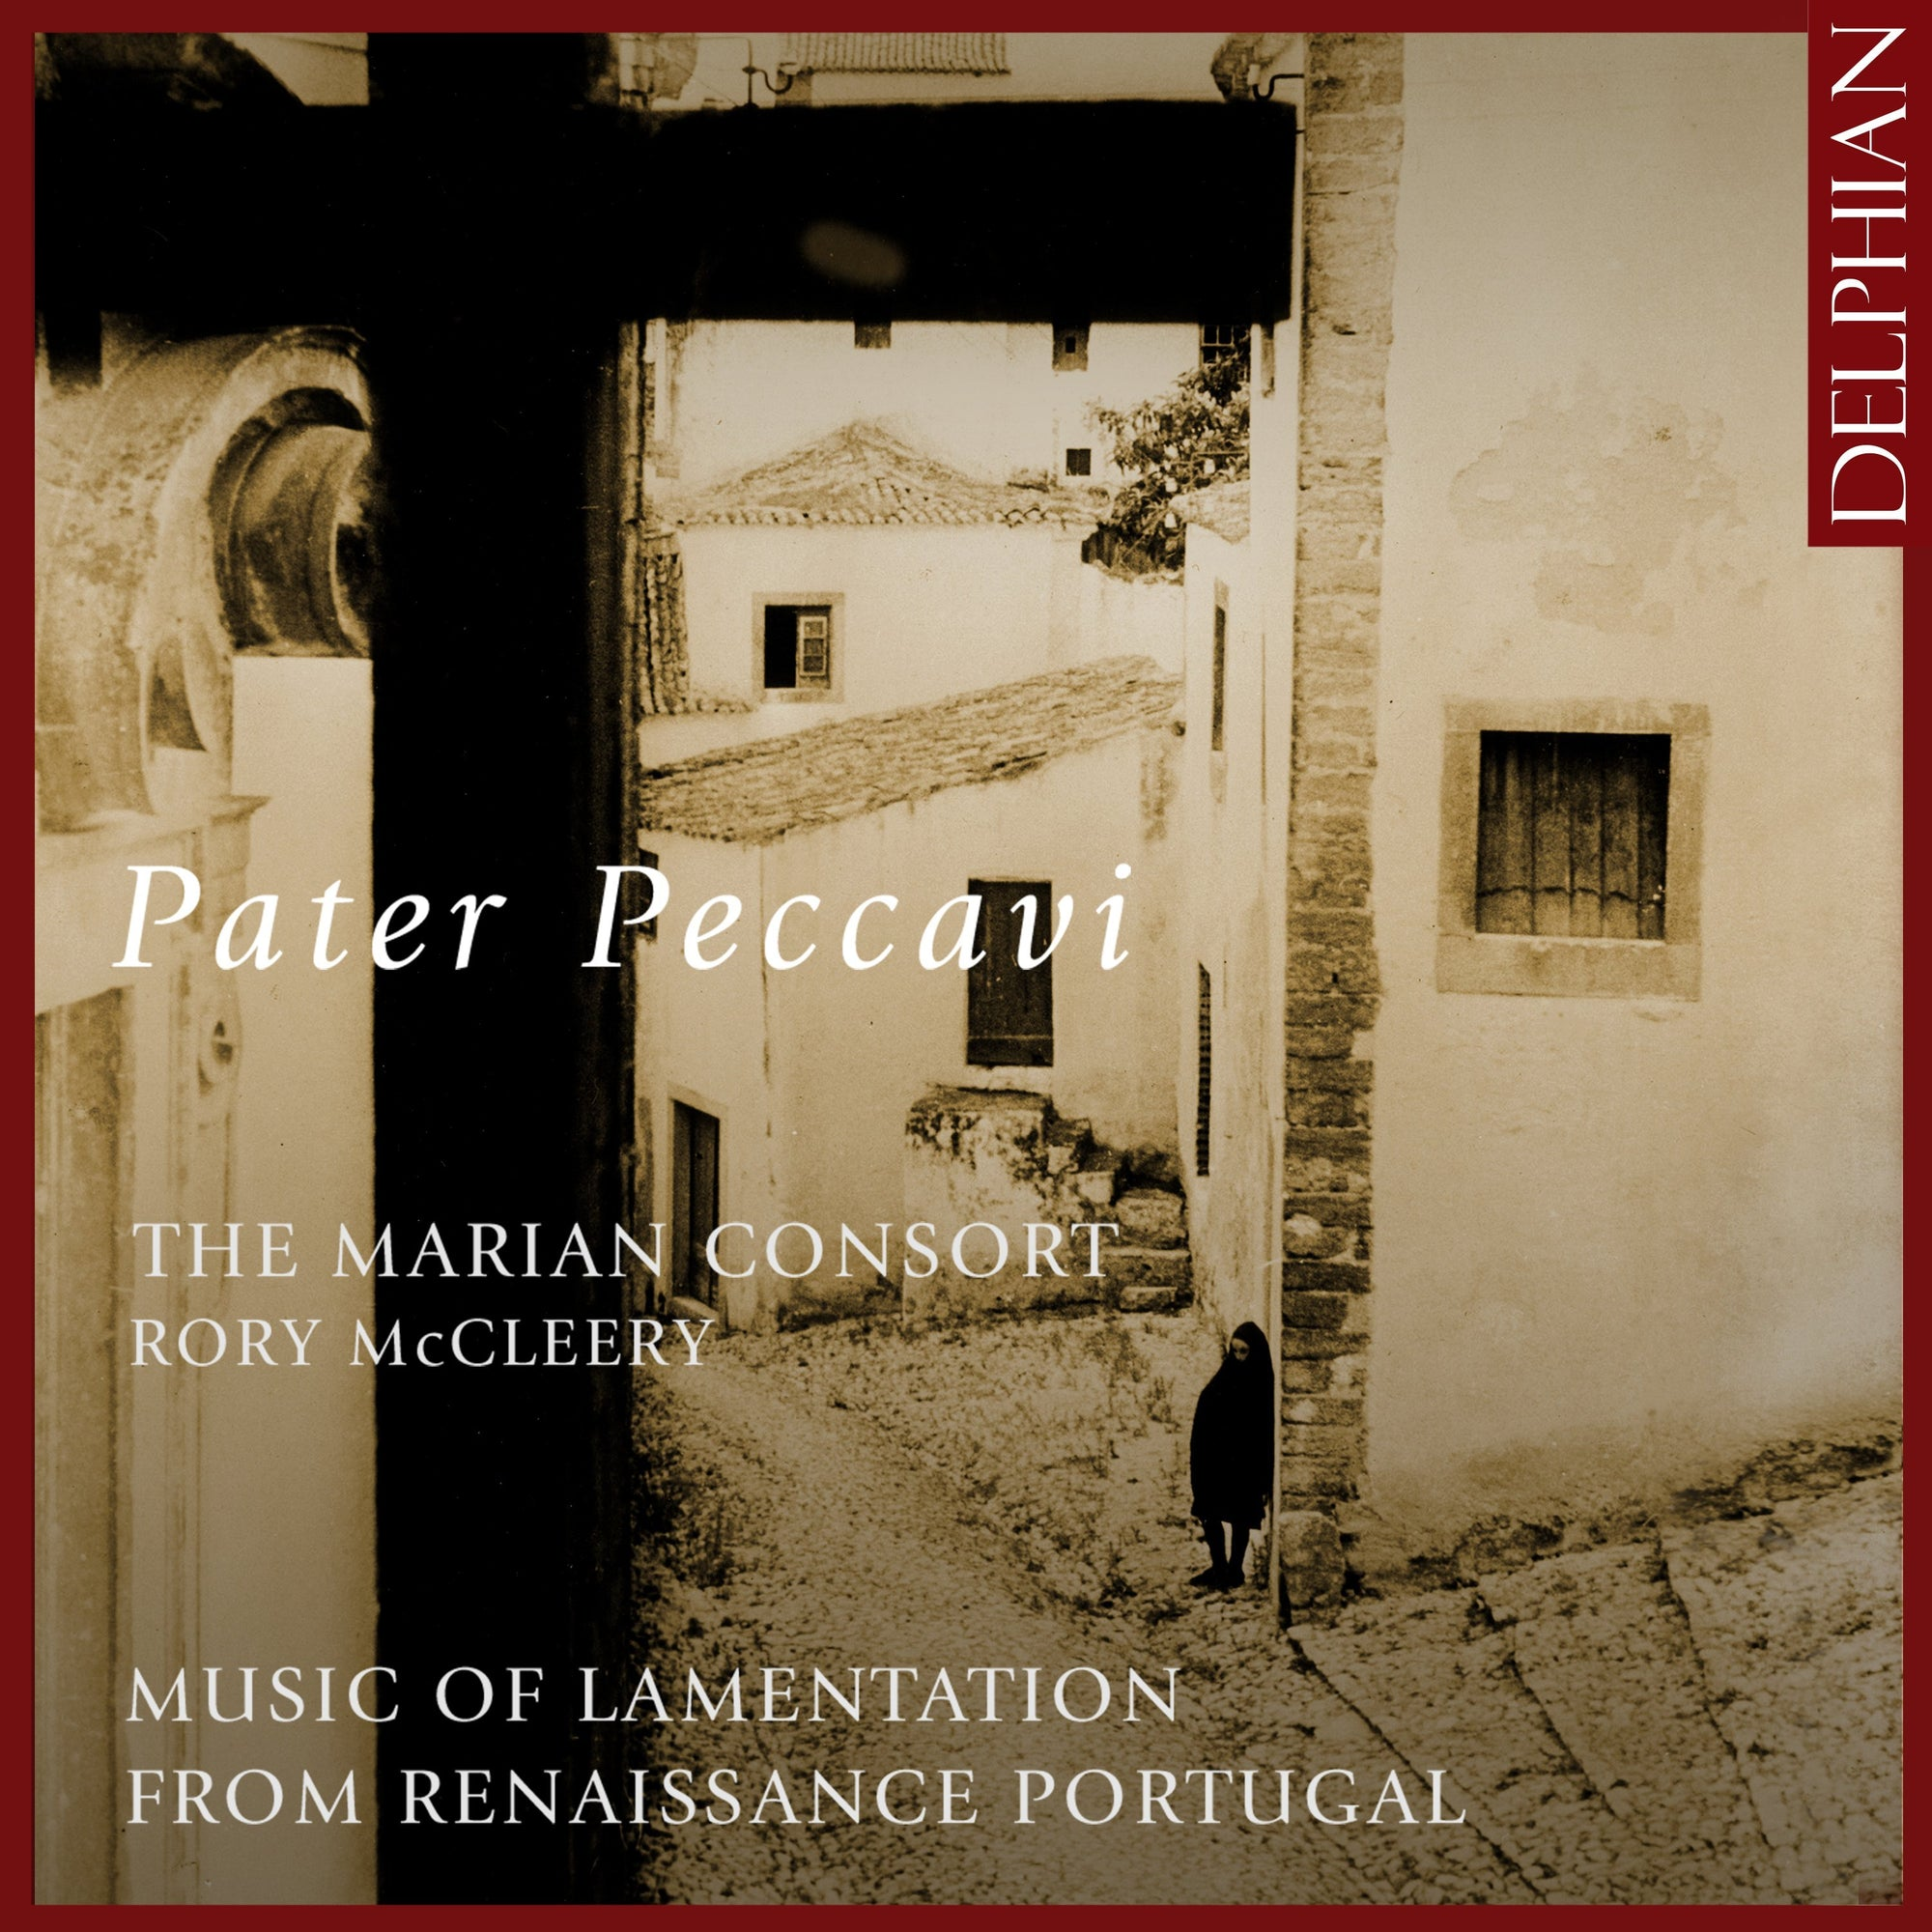 Pater Peccavi: Music of Lamentation from Renaissance Portugal CD Delphian Records